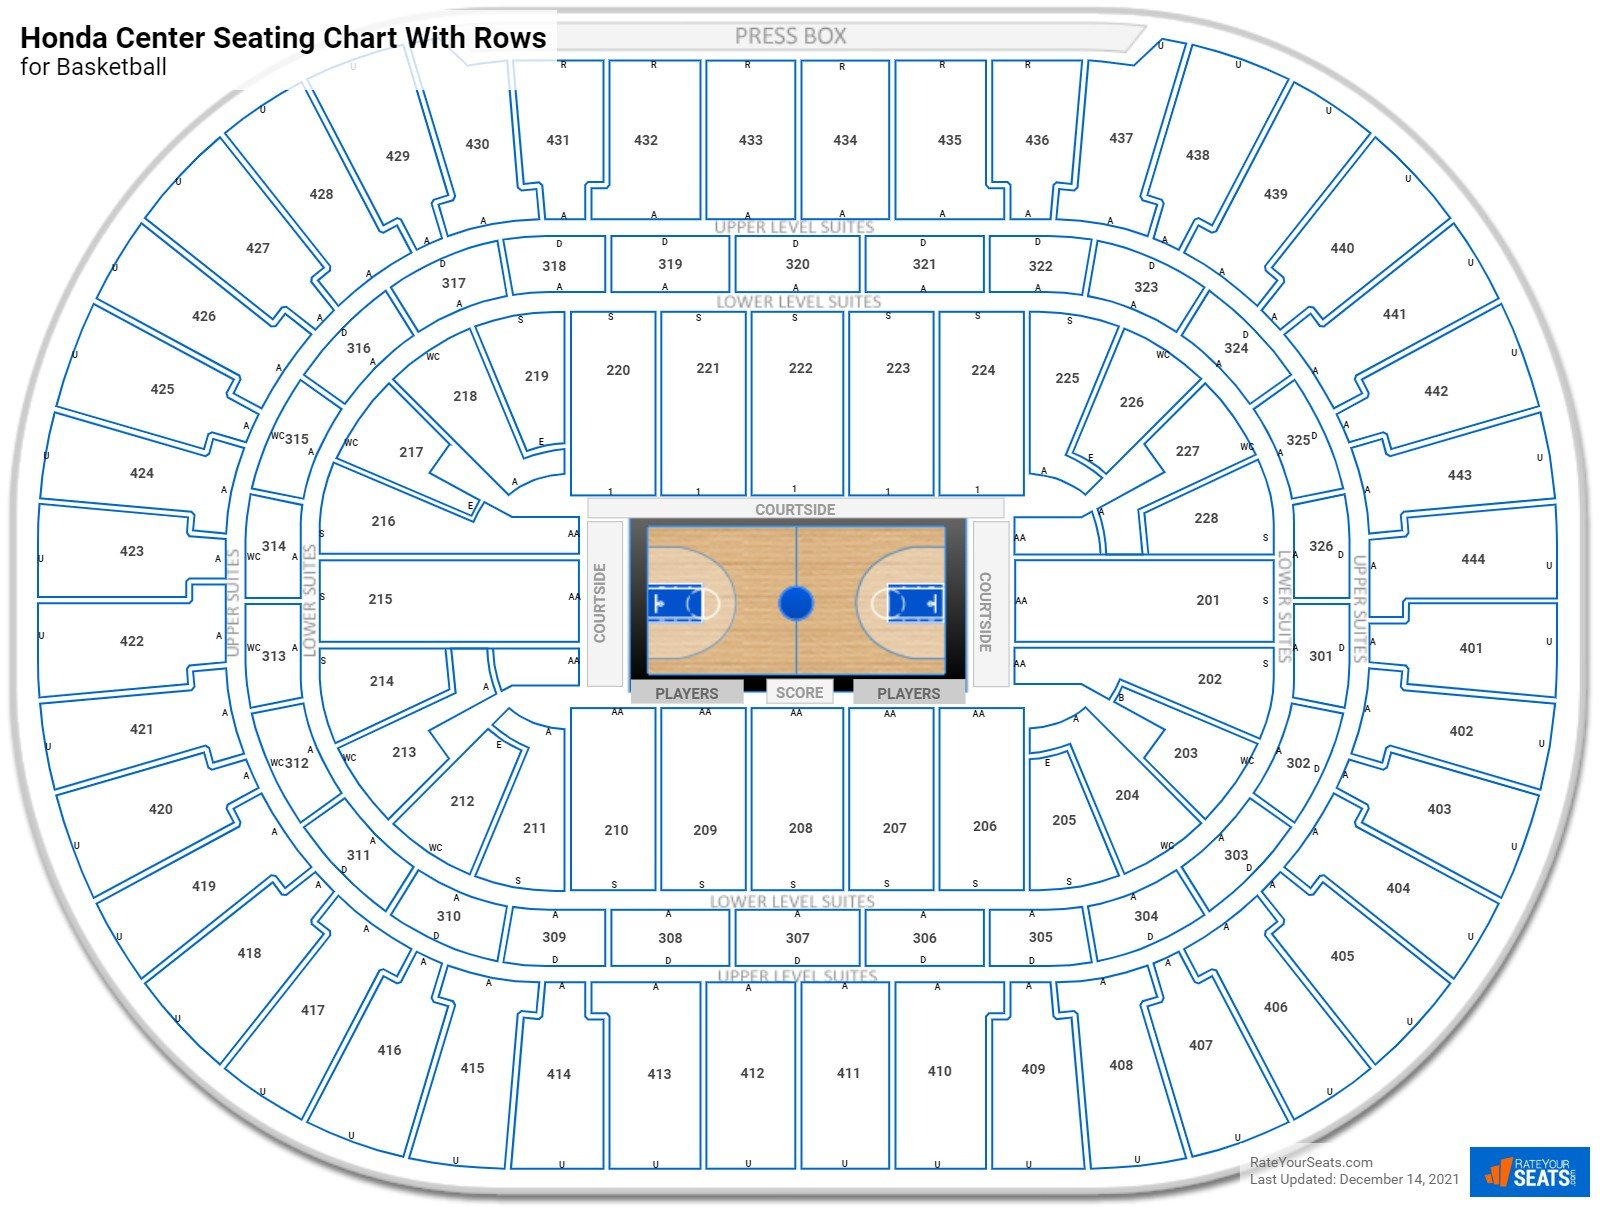 Honda Center seating chart with rows basketball